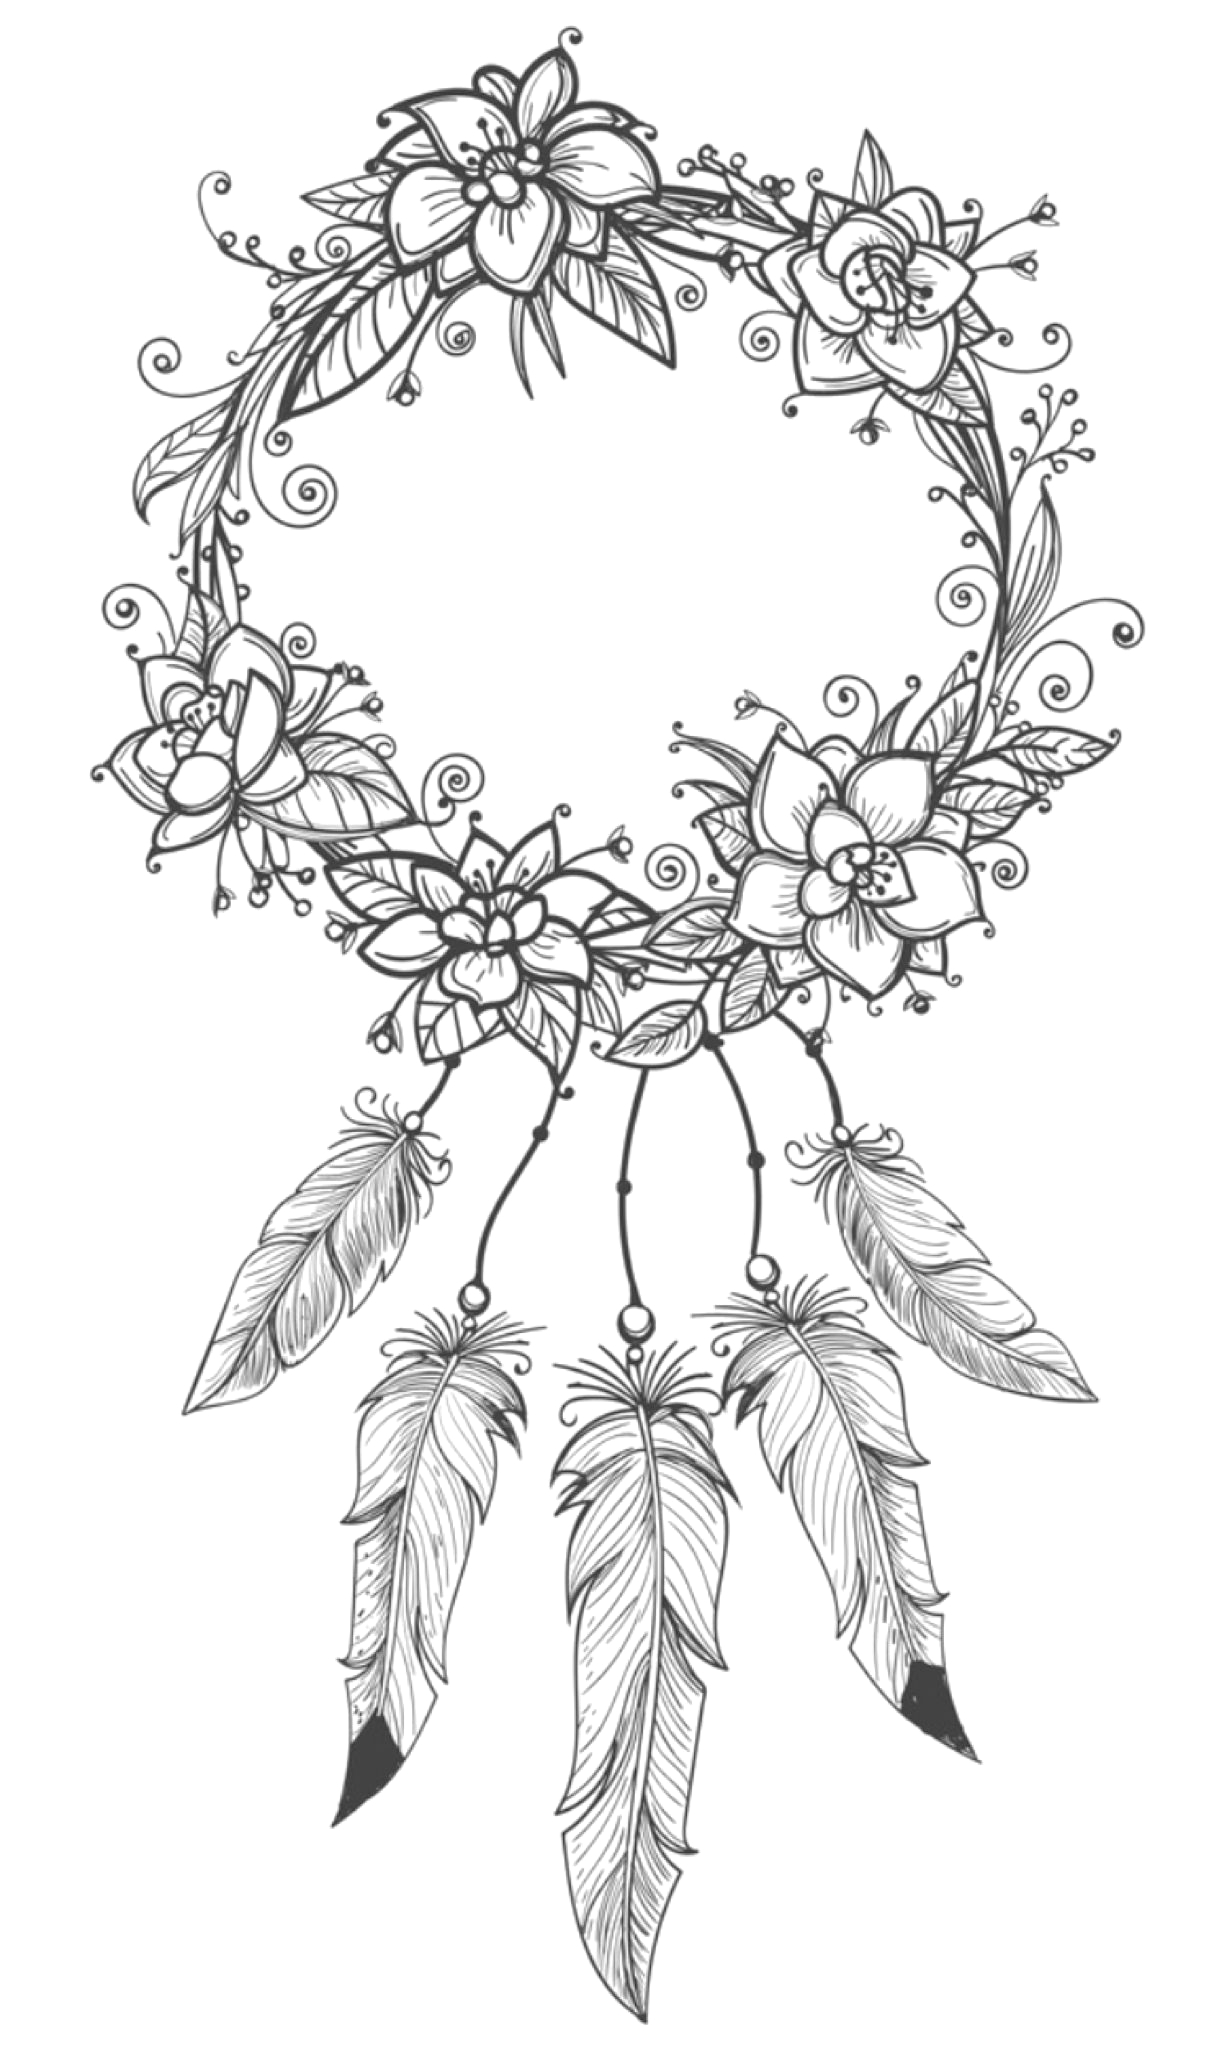 Free Dream Catcher Coloring Pages for Adults Dreamcatcher Coloring Page